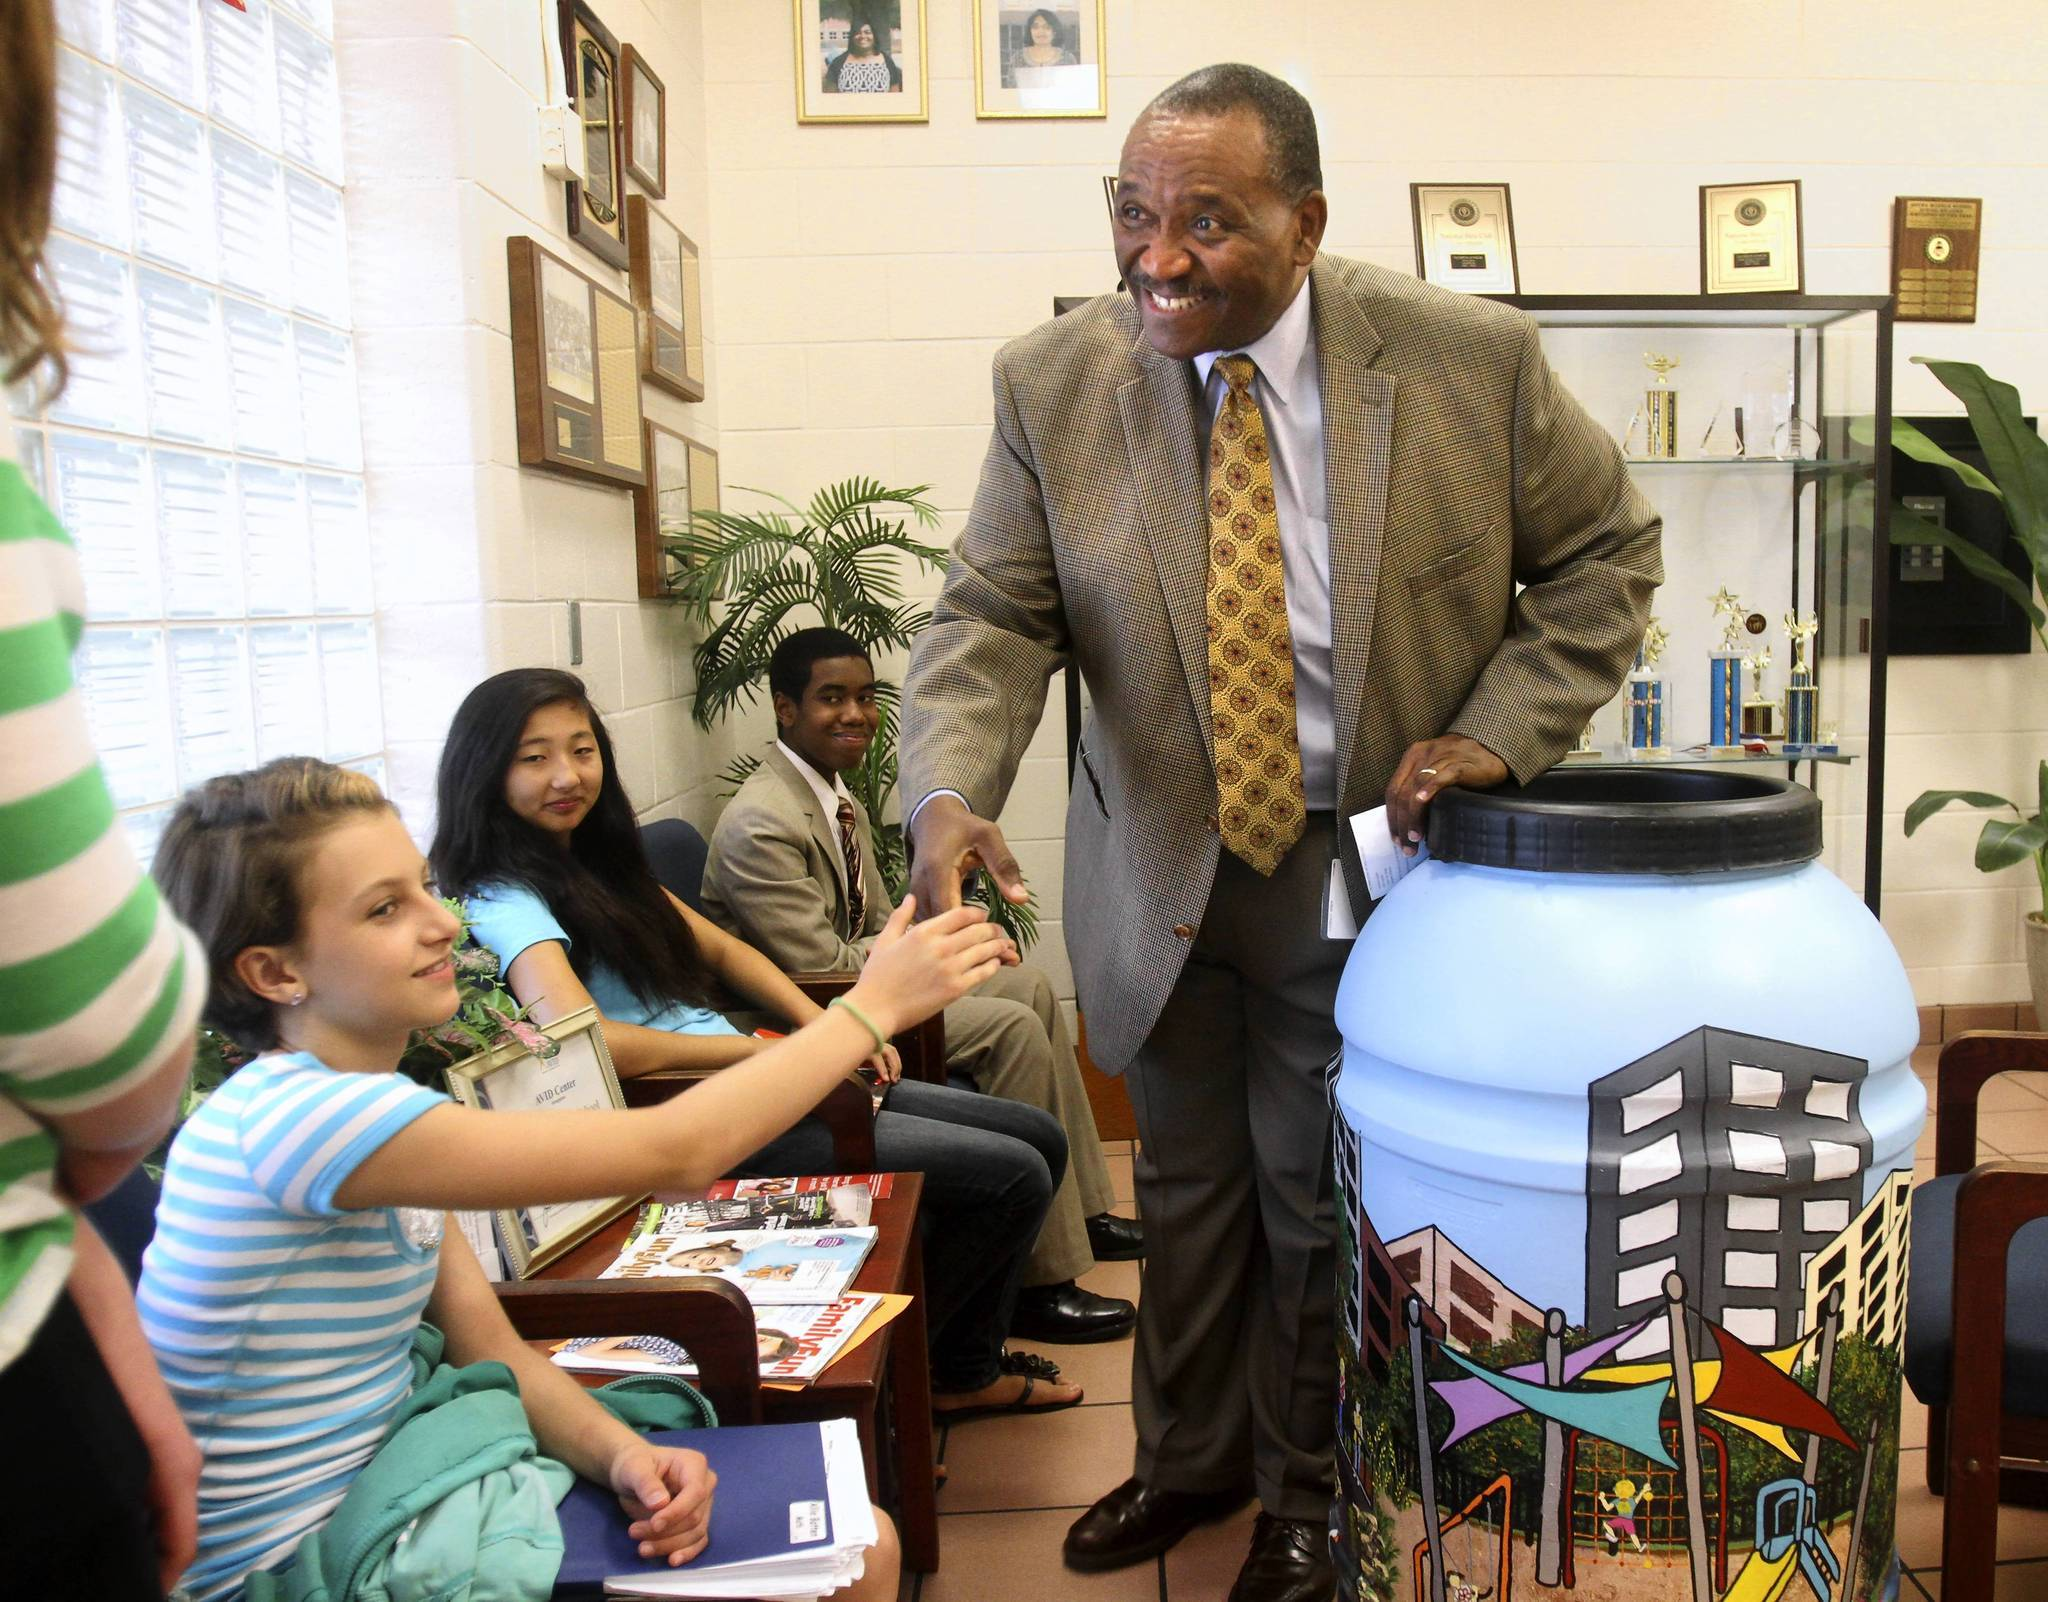 Orange County schools Superintendent Ron Blocker talks to Gotha Middle School students about a rain barrel art project they presented to him, in Gotha, Thursday, June 7, 2012. It was Blocker's last day as superintendent after 12 years on the job. Students are, from left, Danielle Ibrahim, Allie Batten, Chloe Cal and Nathaniel Calixte.